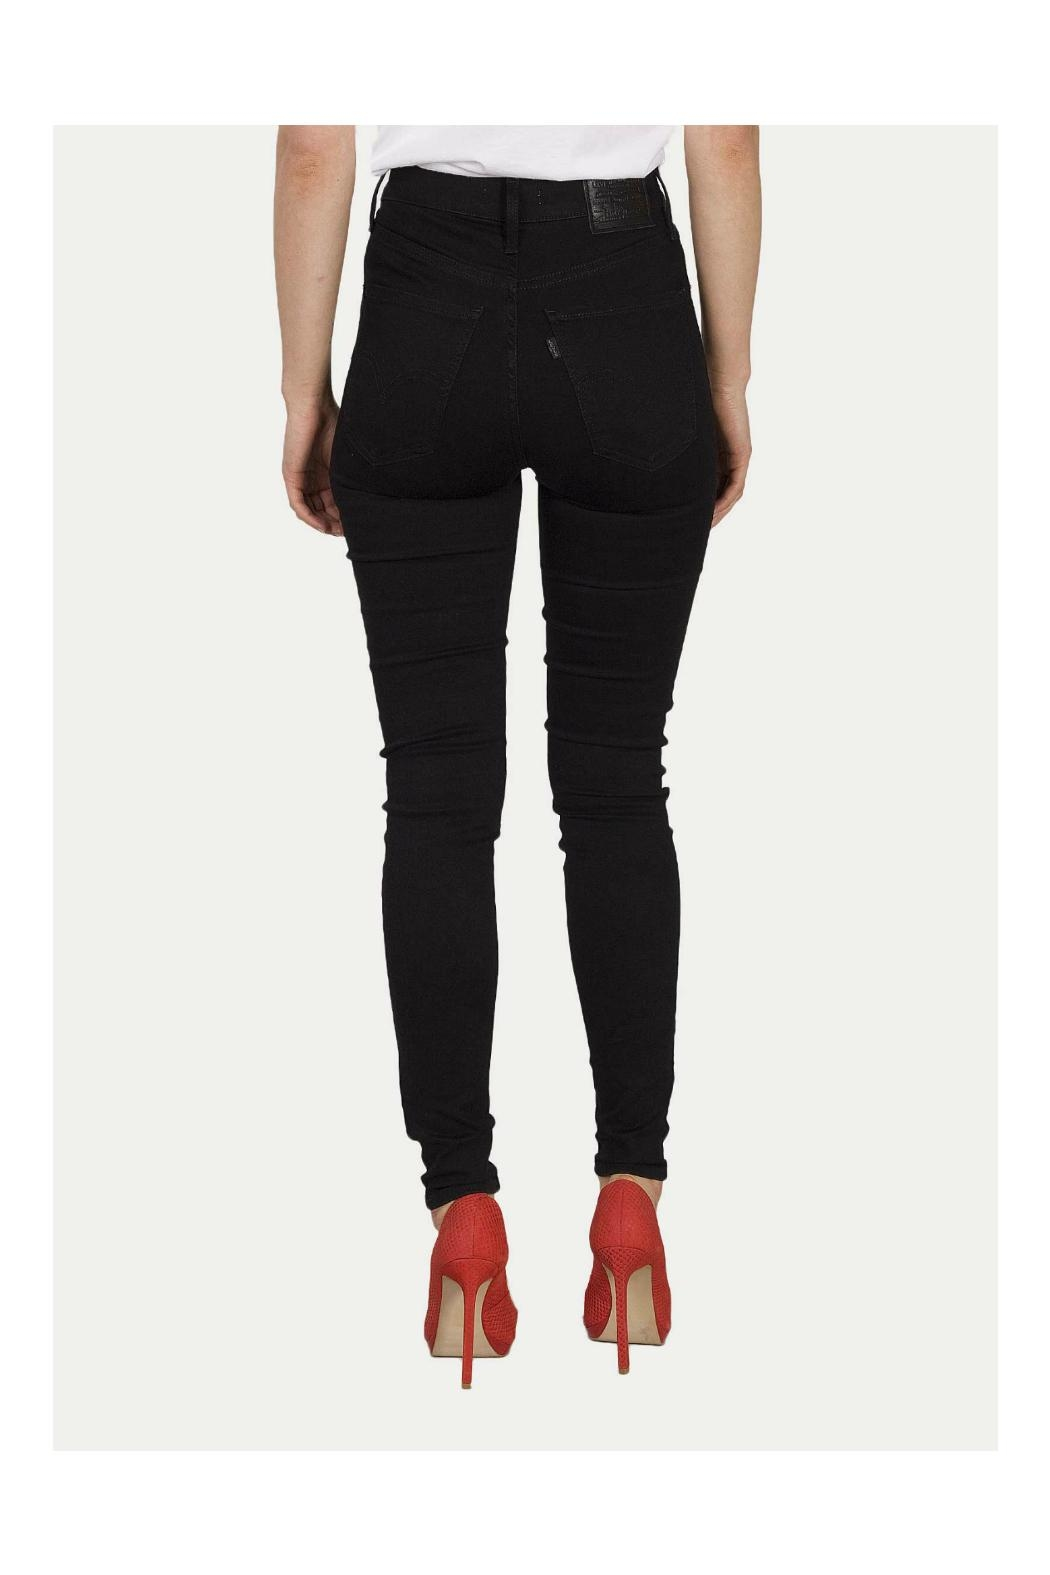 Levi's Mile High Skinny Jeans - Side Cropped Image